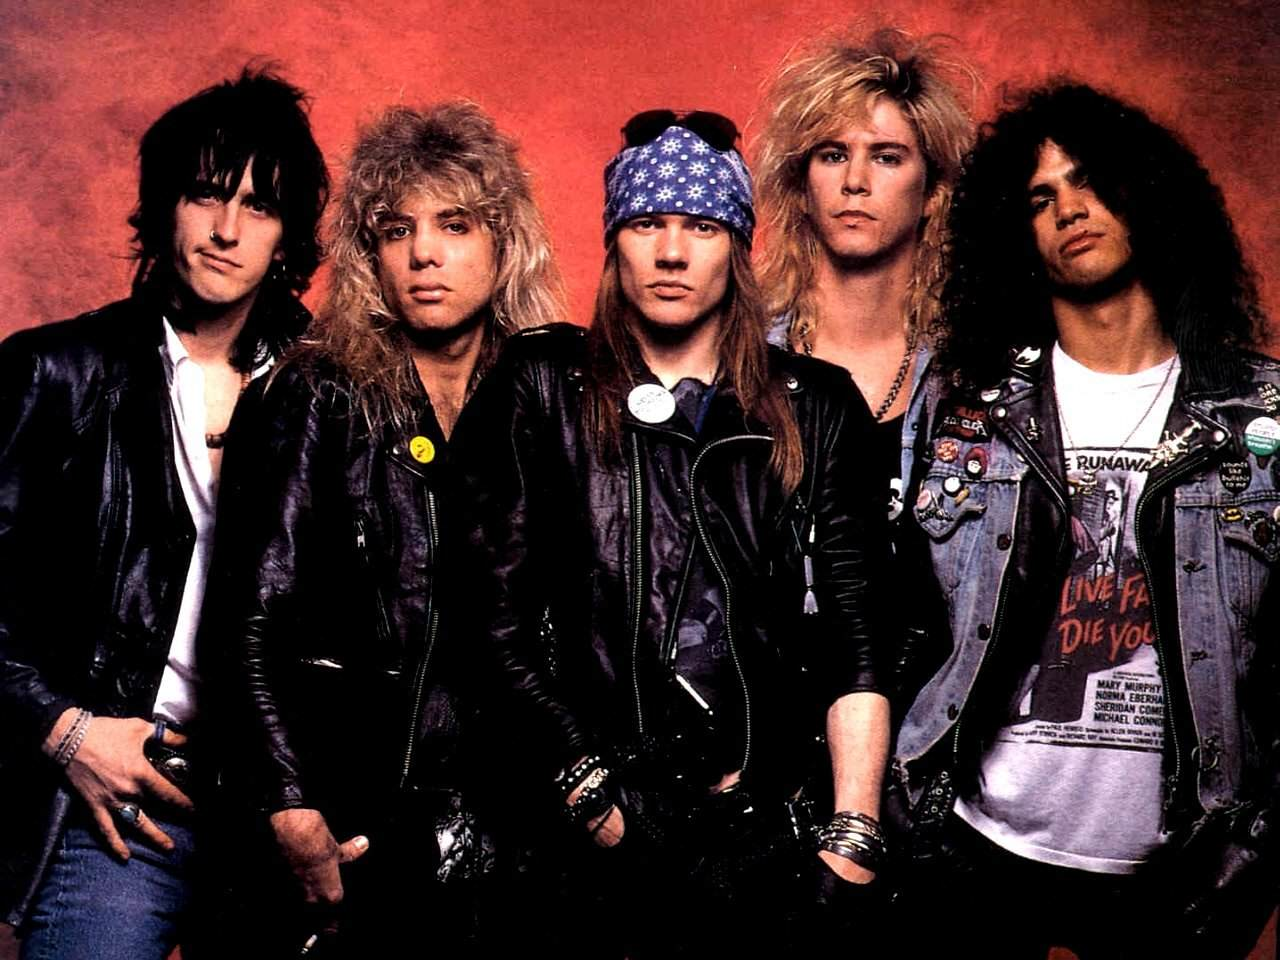 guns n roses 1 Its Official, Guns N Roses Are Getting Back Together